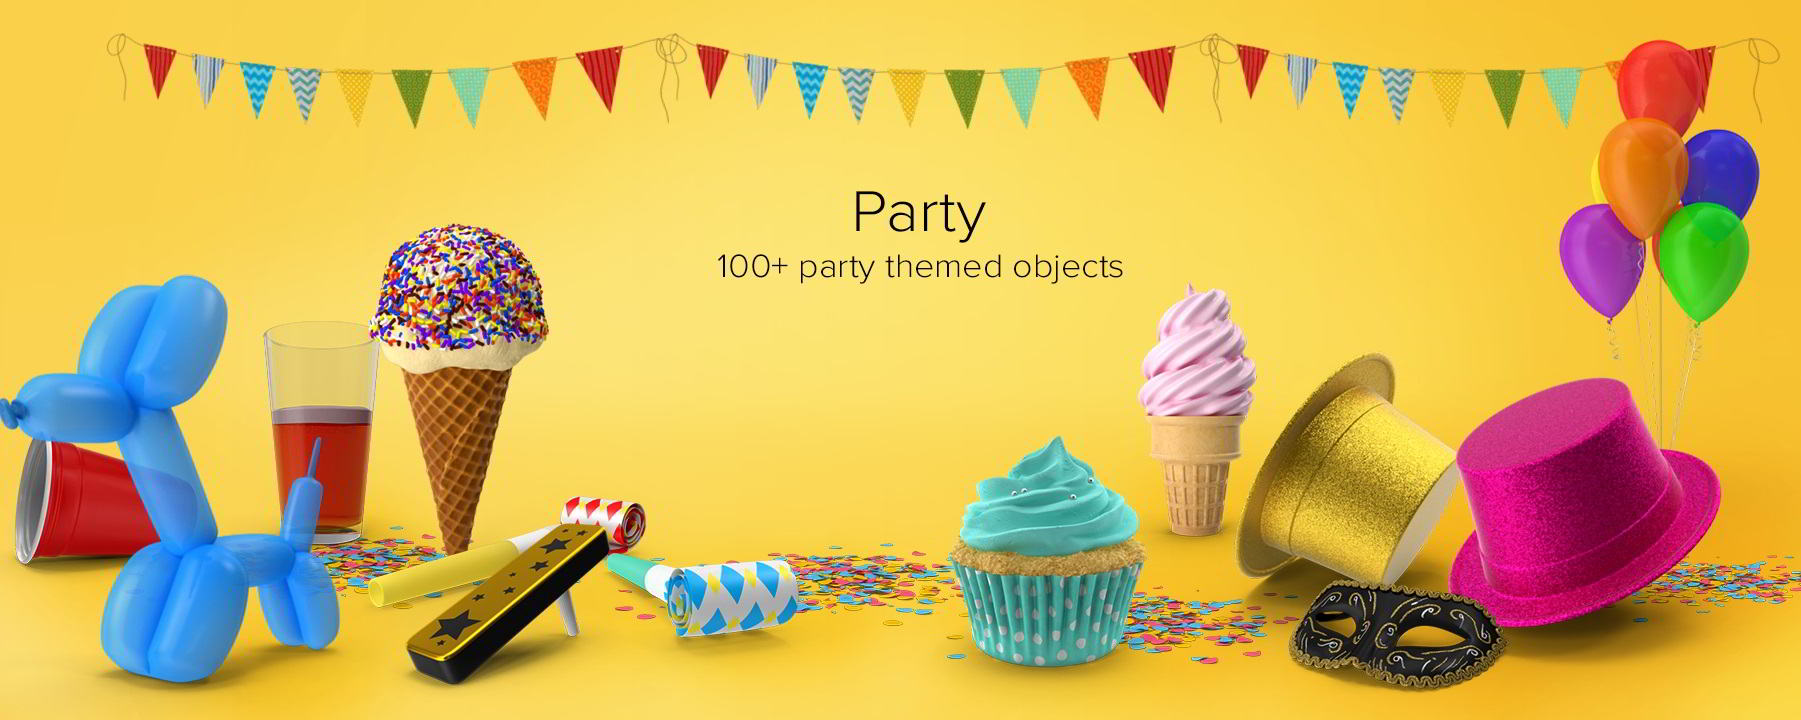 PixelSquid – Party Collection free download